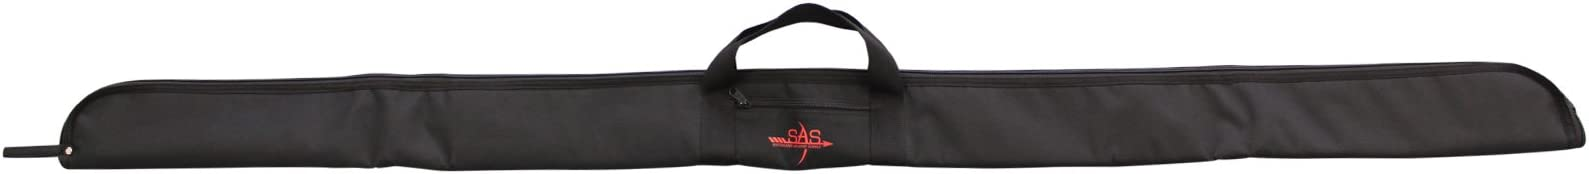 Southland Archery Supply SAS Long Traditional Bow Bag Case 4 Wide